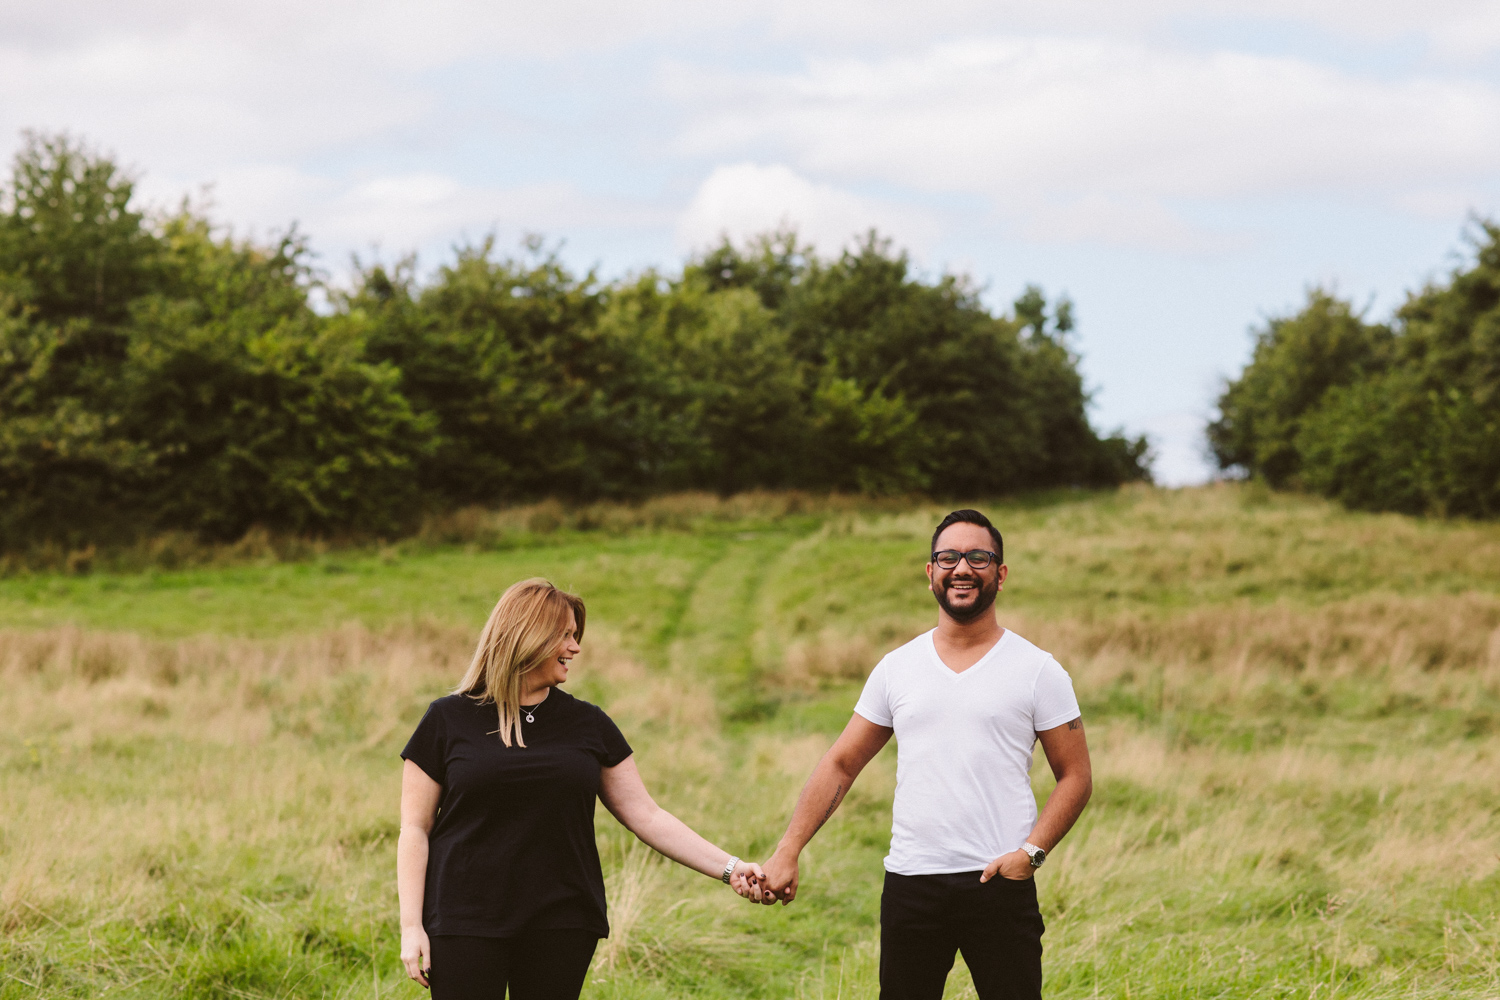 brockholes_preston_pre_wedding_shoot-4.jpg